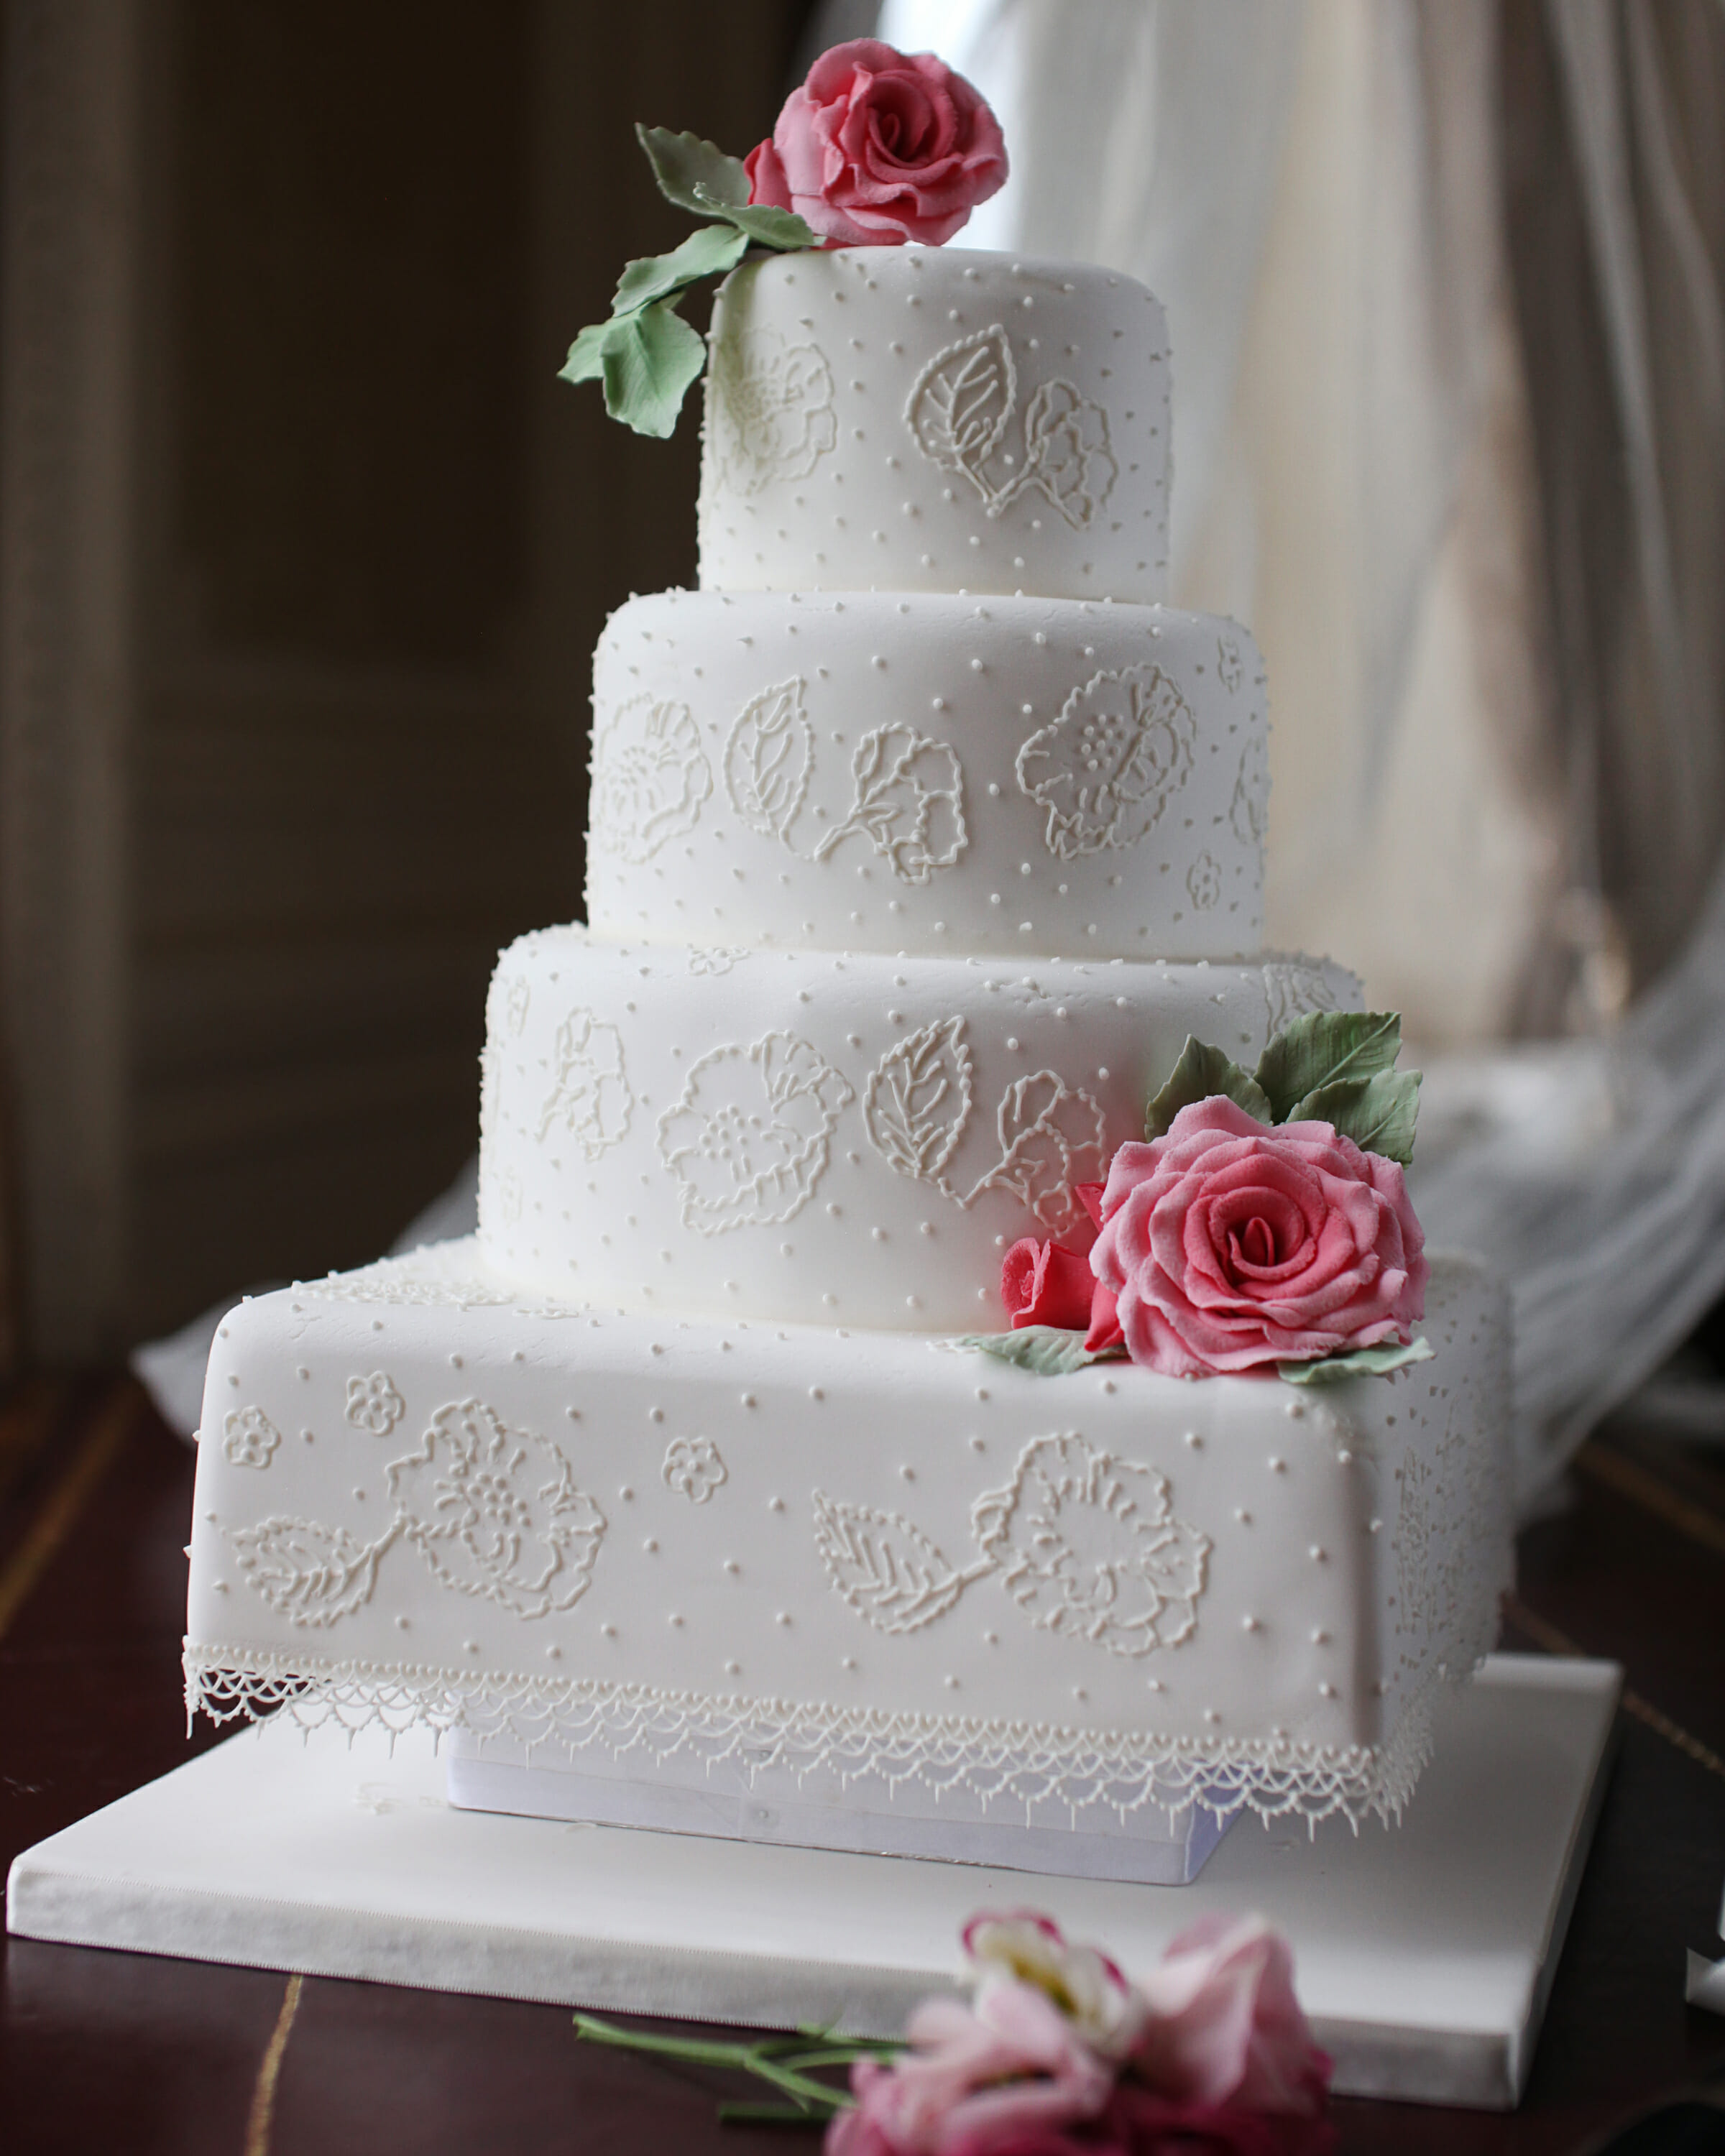 Demand For Wedding Cakes